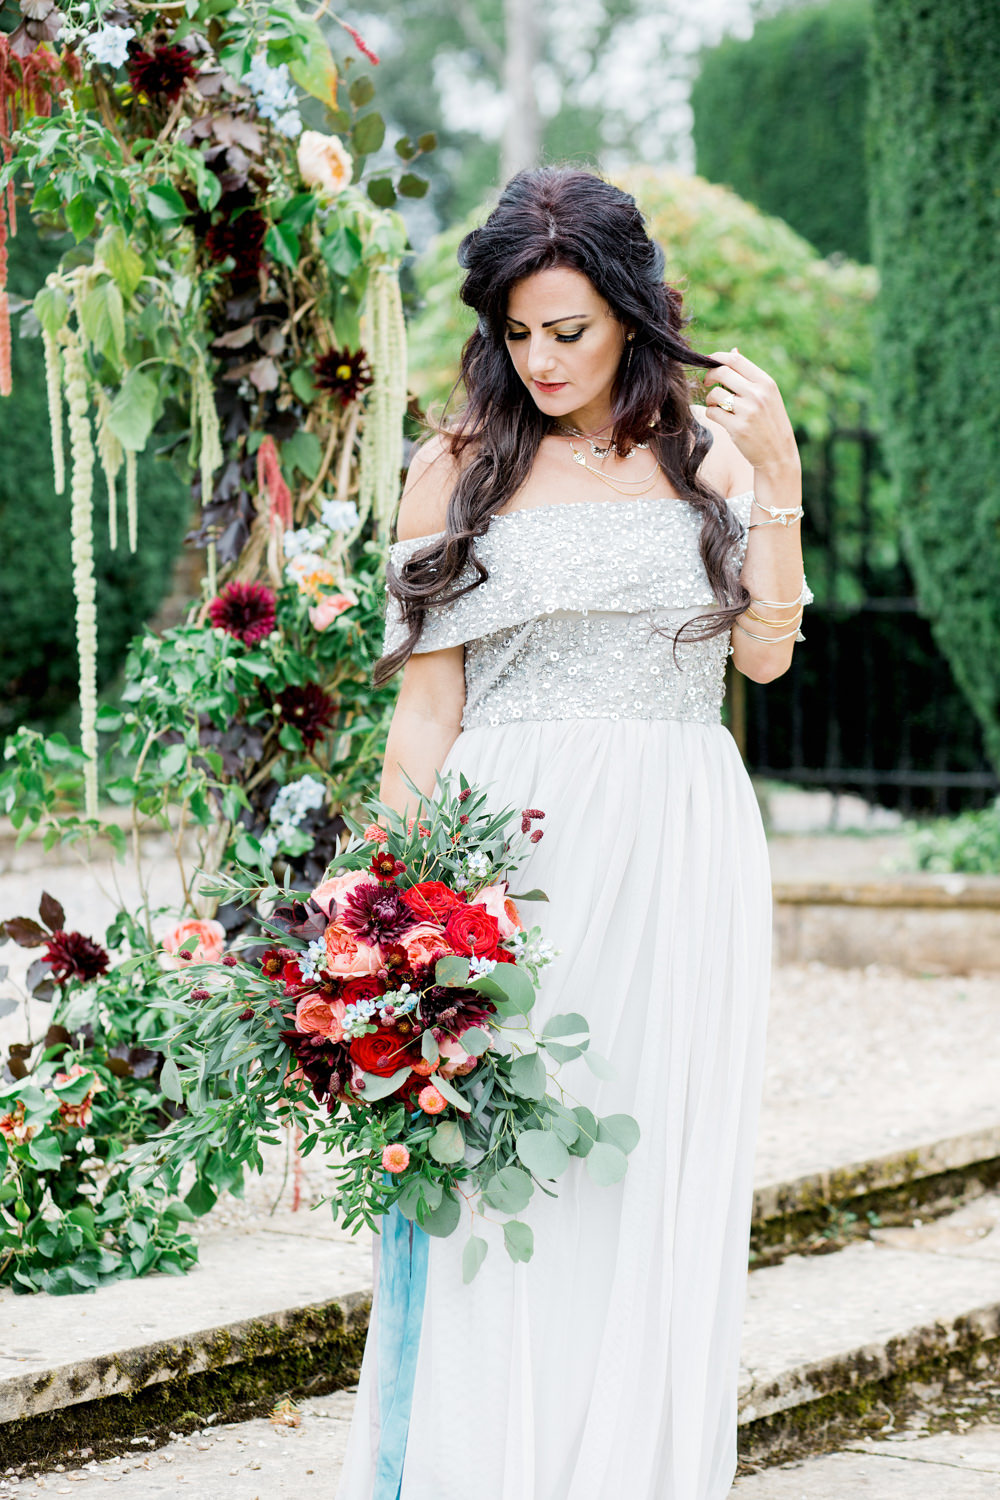 Dress Gown Bride Bridal Blue Sequin Sleeves Ethereal Romantic Wedding Ideas Katherine Newman Photography